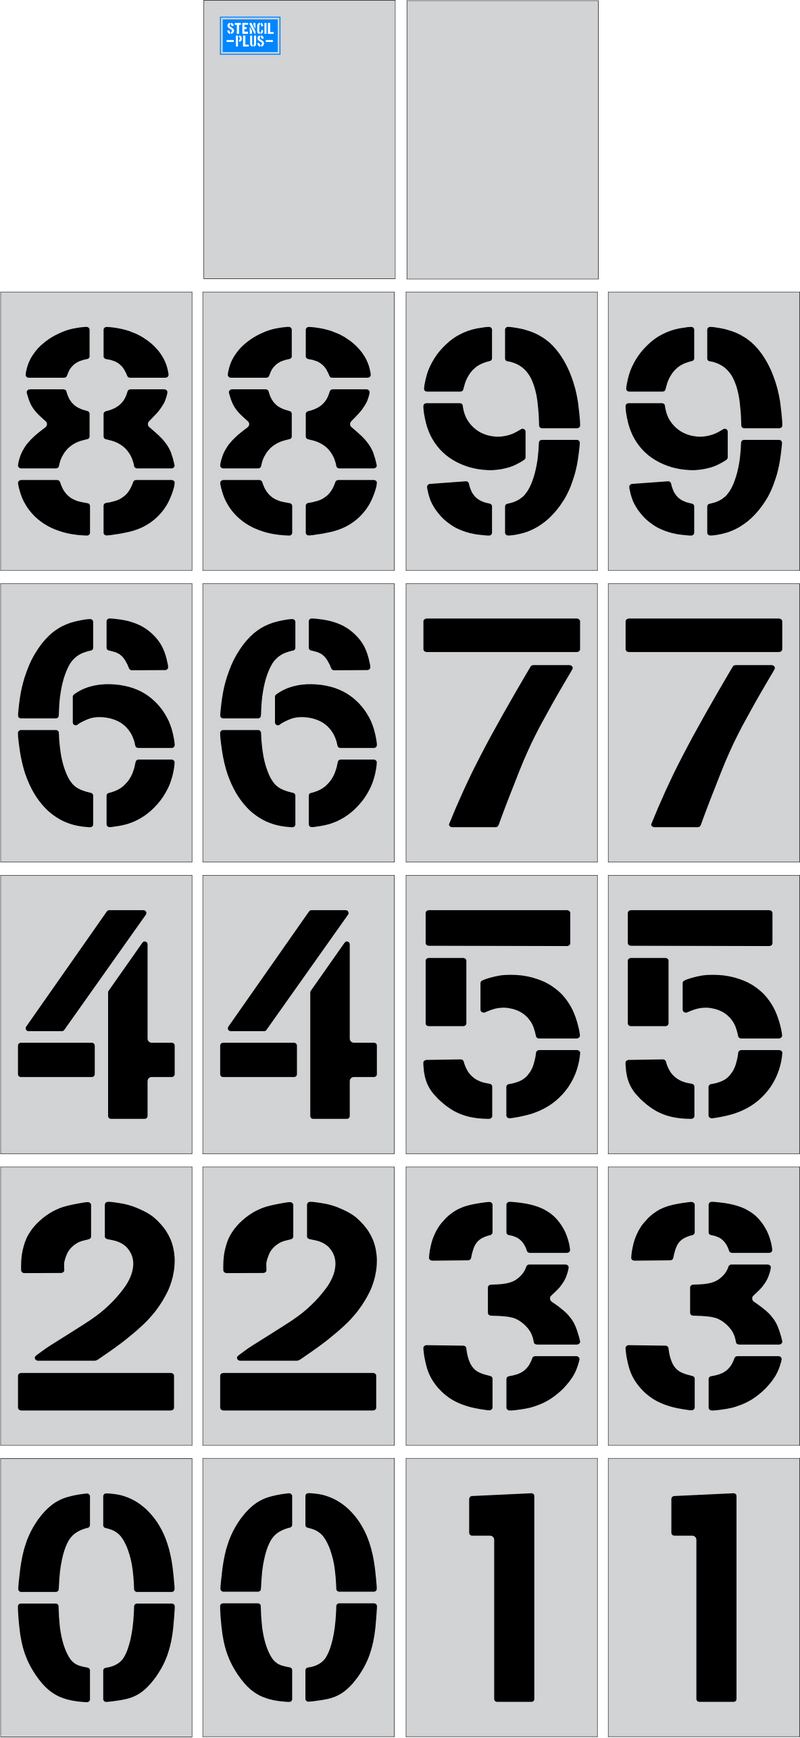 "15"" Number Kit Parking Lot Pavement Marking Stencil"